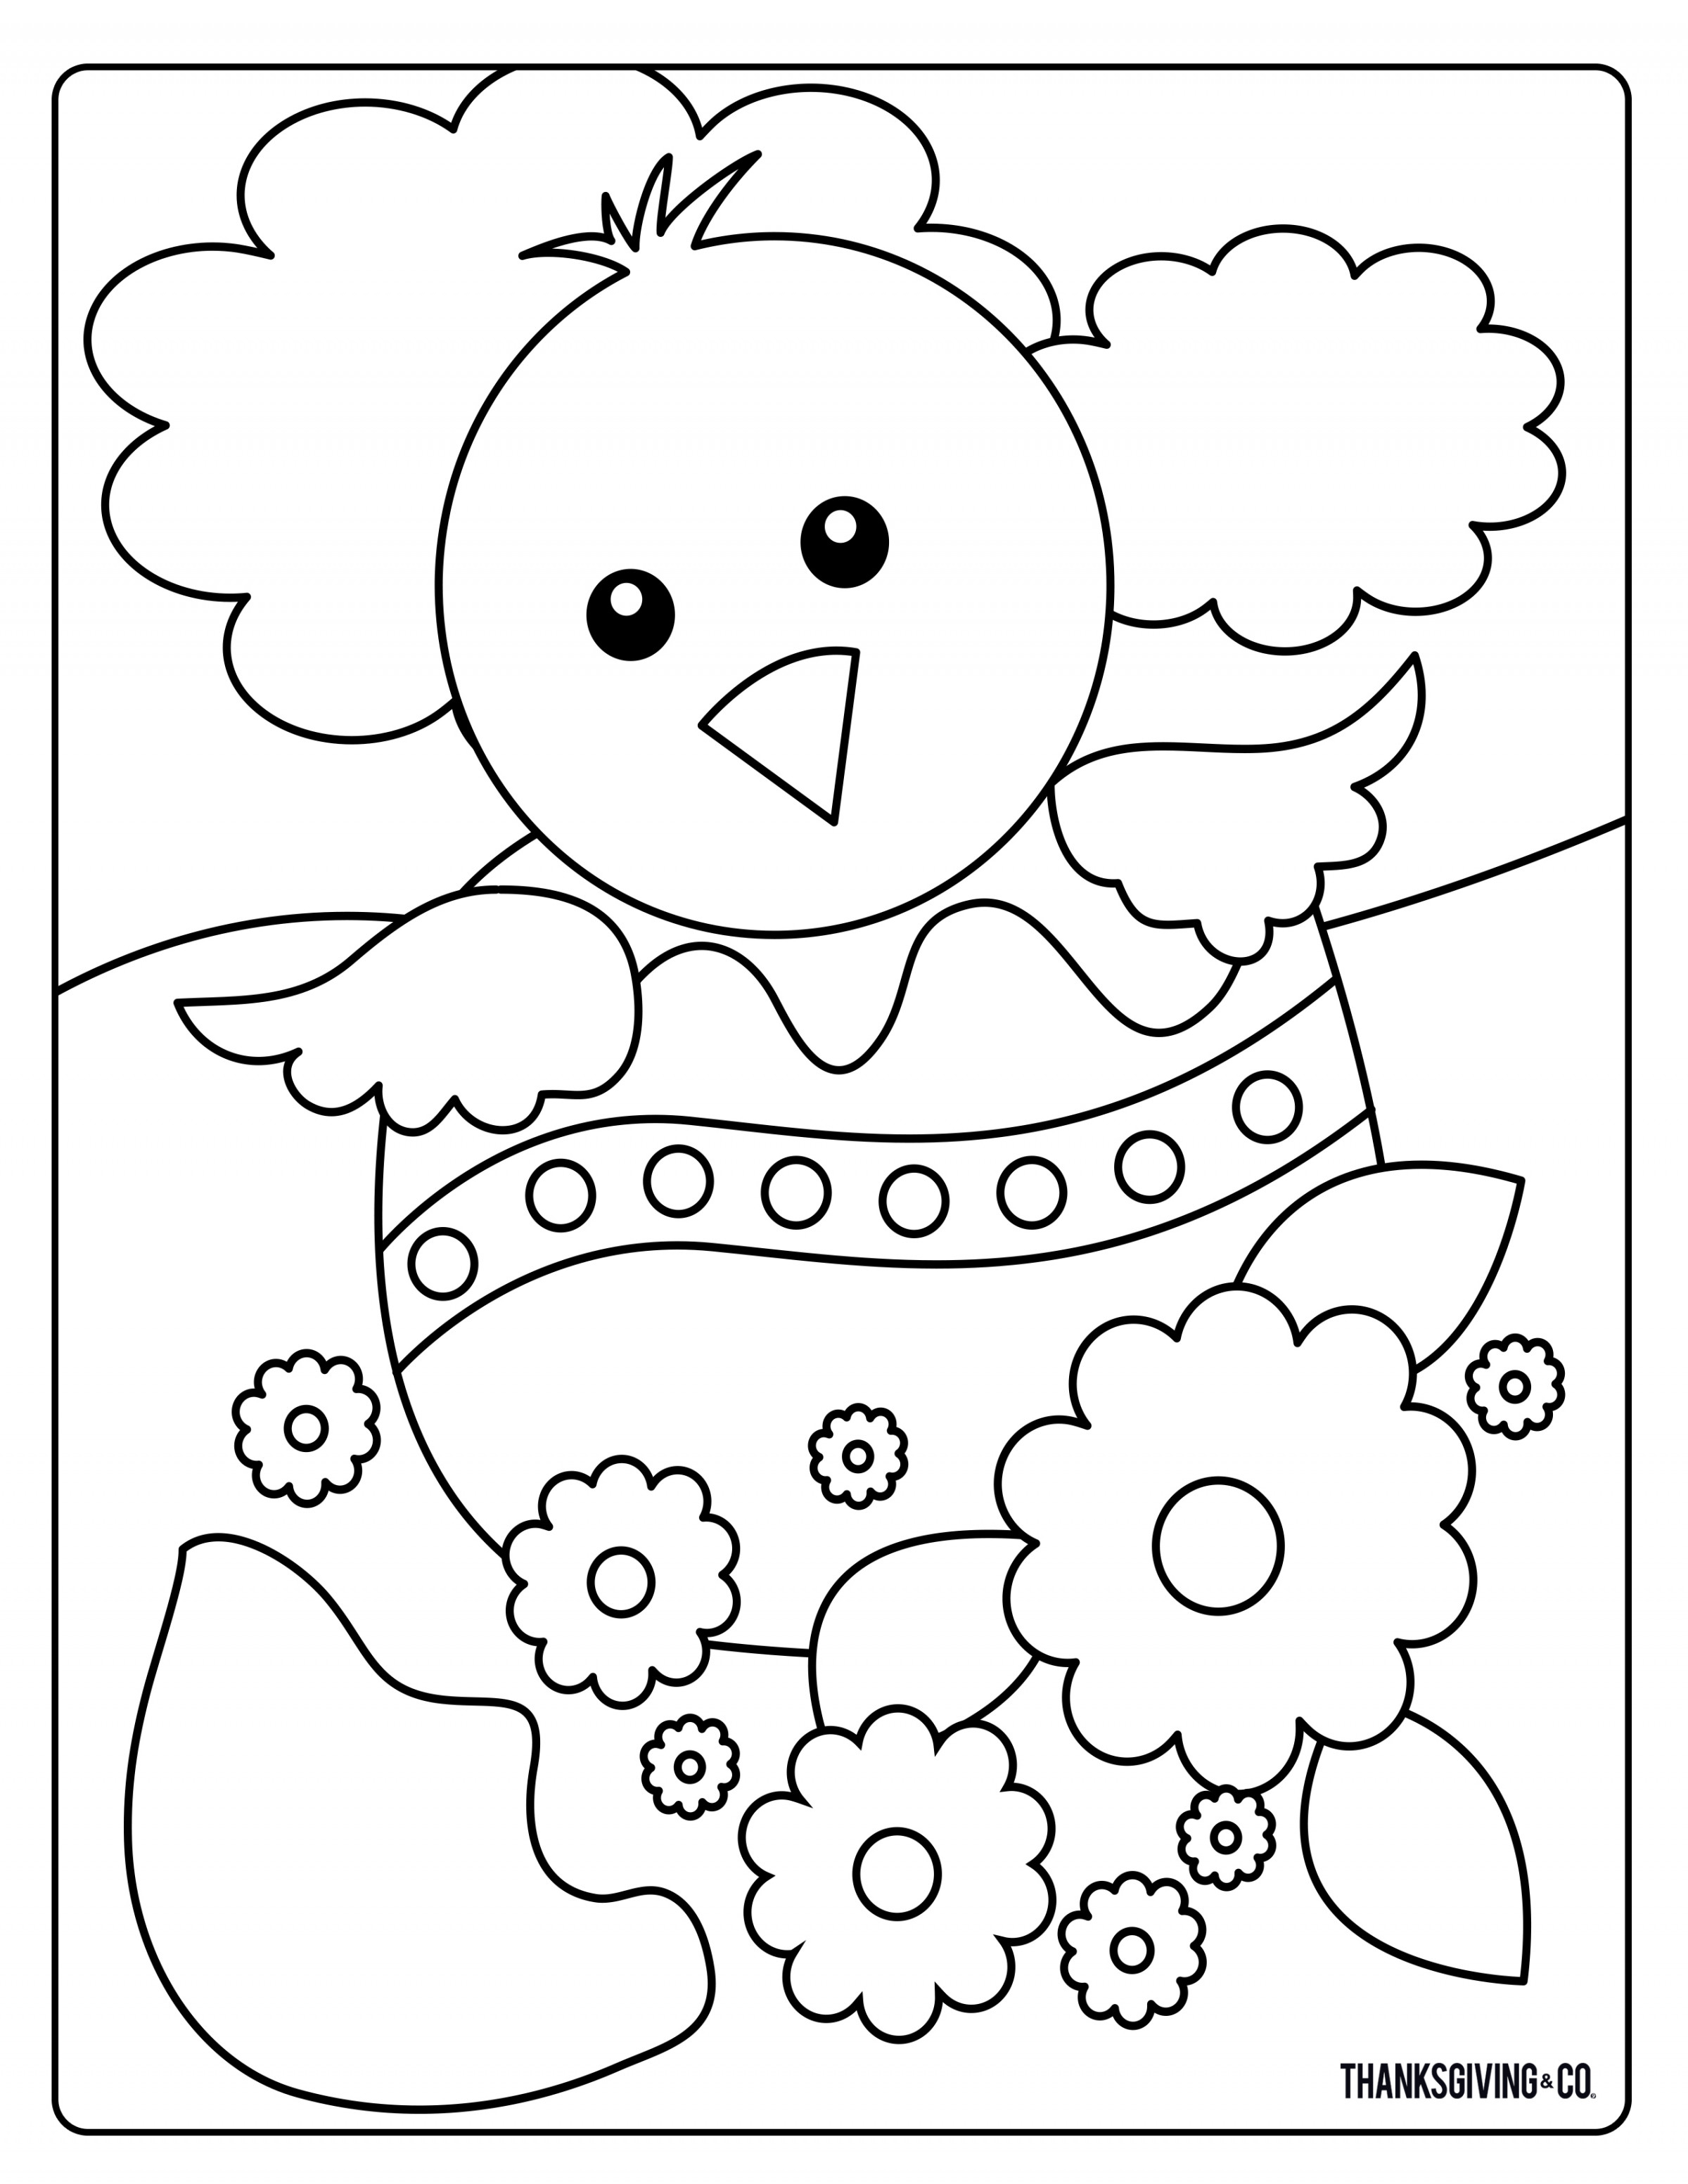 Images Of Coloring Pages Sweet And Sunny Spring Easter Coloring Pages Thanksgiving